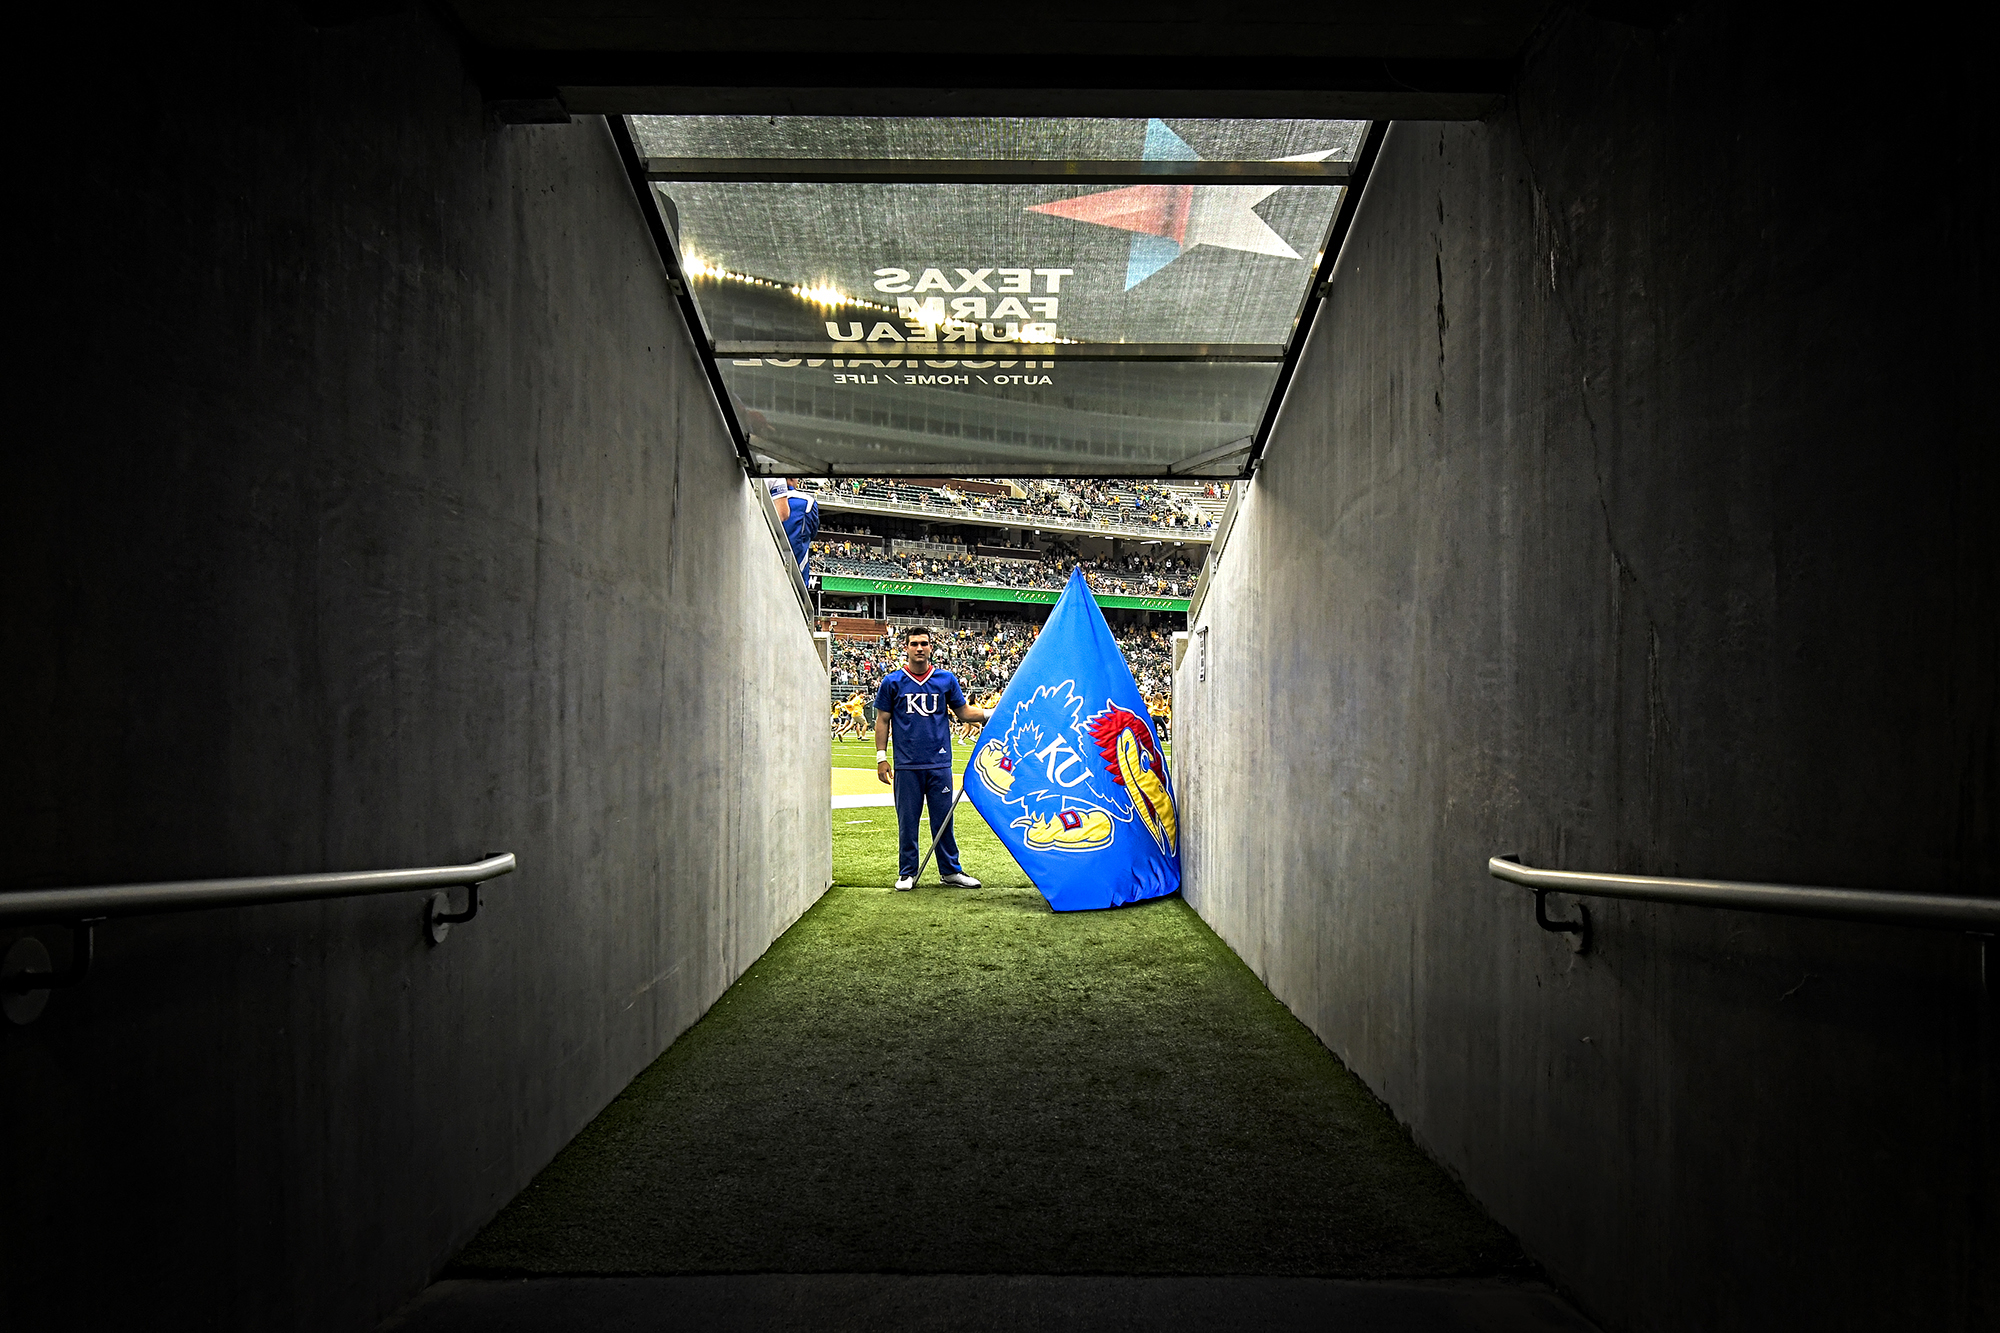 BRING 'EM OUT – Maxwell Simonian waited at the end of a tunnel leading from the KU football locker room where the junior cheerleader would lead the team onto the field inside McLane Stadium on Saturday, September 22, where the Jayhawks battled Baylor in Waco, Texas.